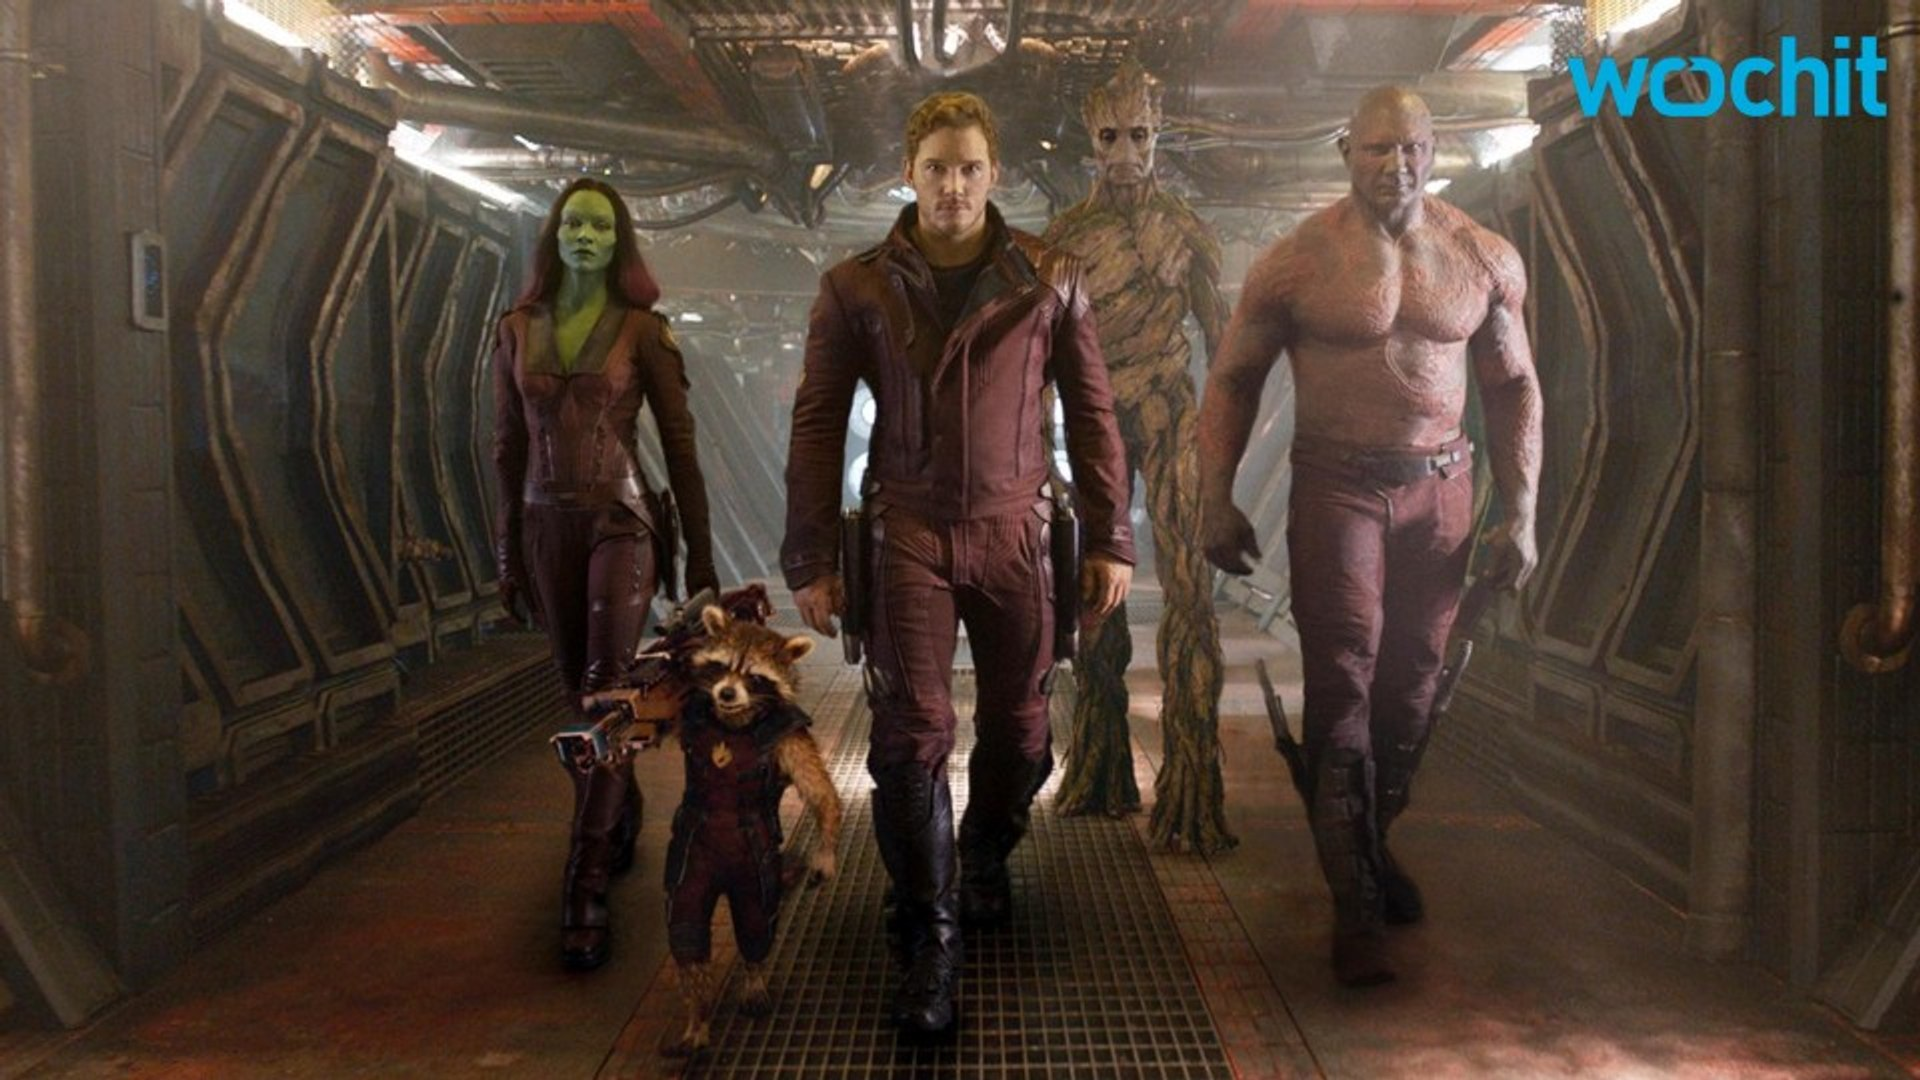 Guardians of the Galaxy 2 Japanese Trailer: It's Baby Groot Time